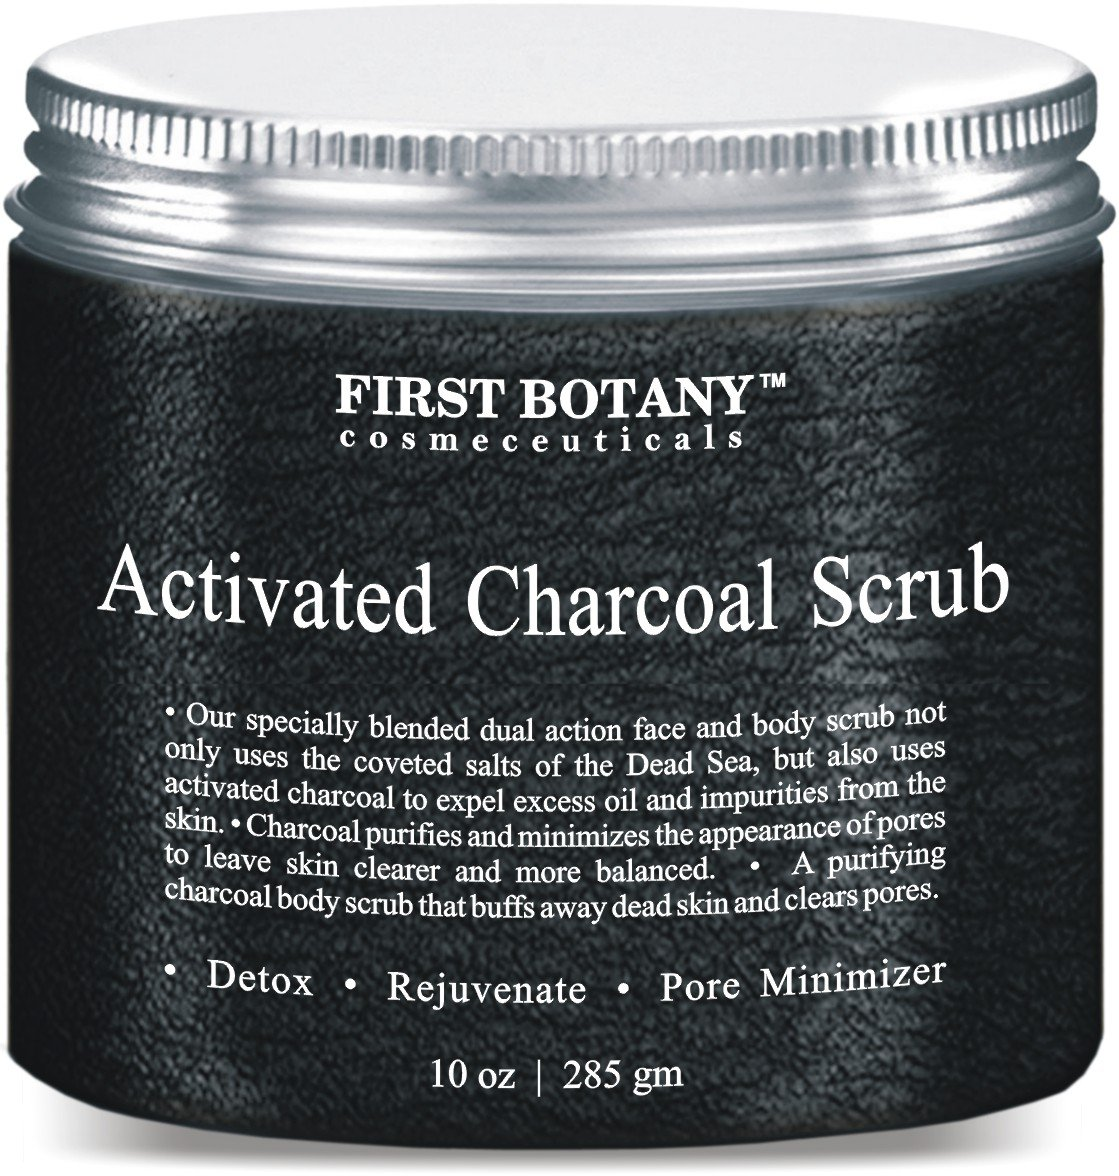 First Botany Cosmeceuticals The BEST Charcoal Scrub 10 oz. - Best for Facial Scrub Pore Minimizer & Reduces Wrinkles Acne Scars Blackheads & Anti Cellulite Treatment - Great as Body Scrub Body & Face Cleanser